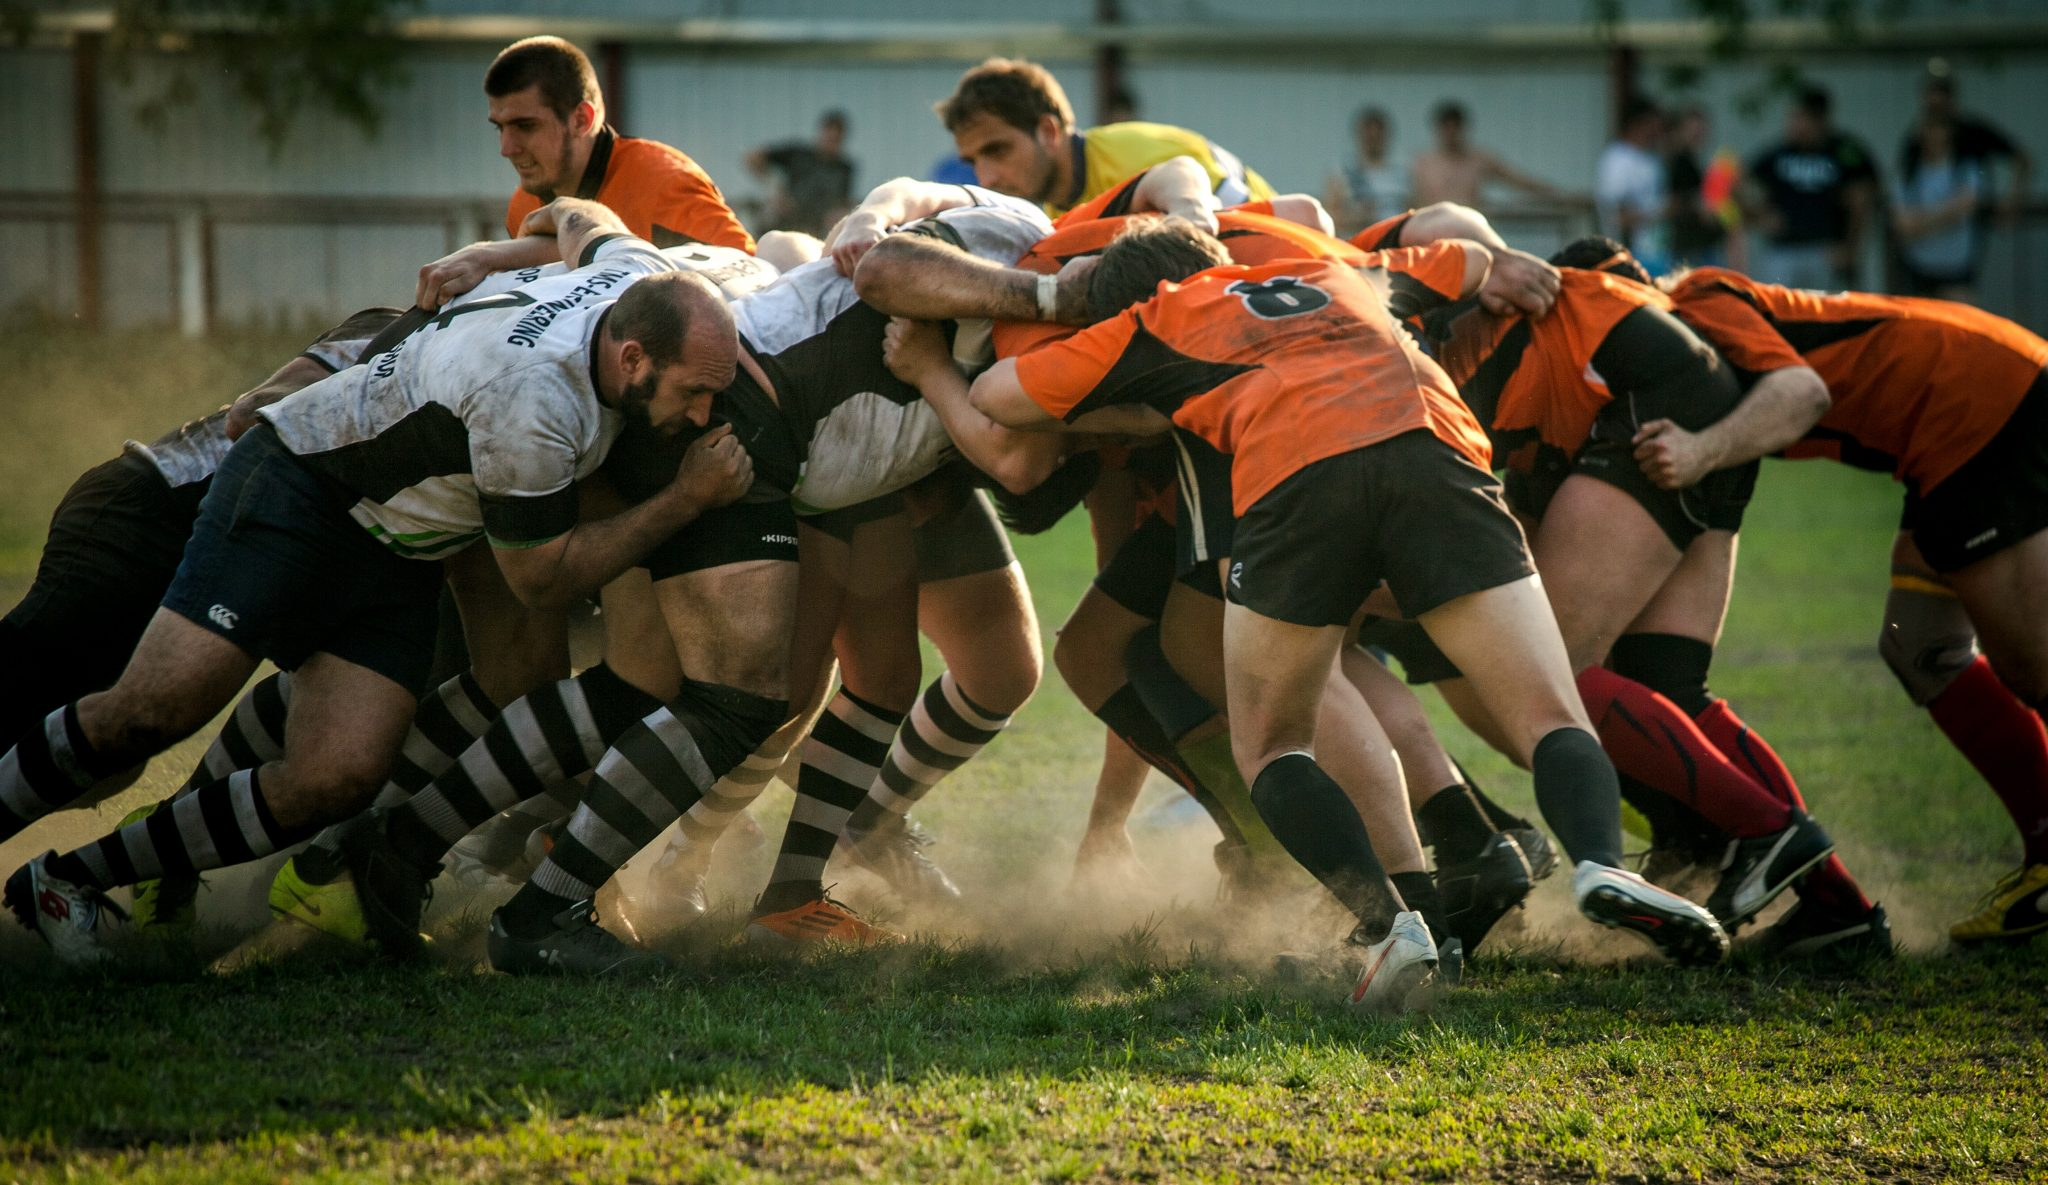 The Differences Between Football (Soccer) and Rugby